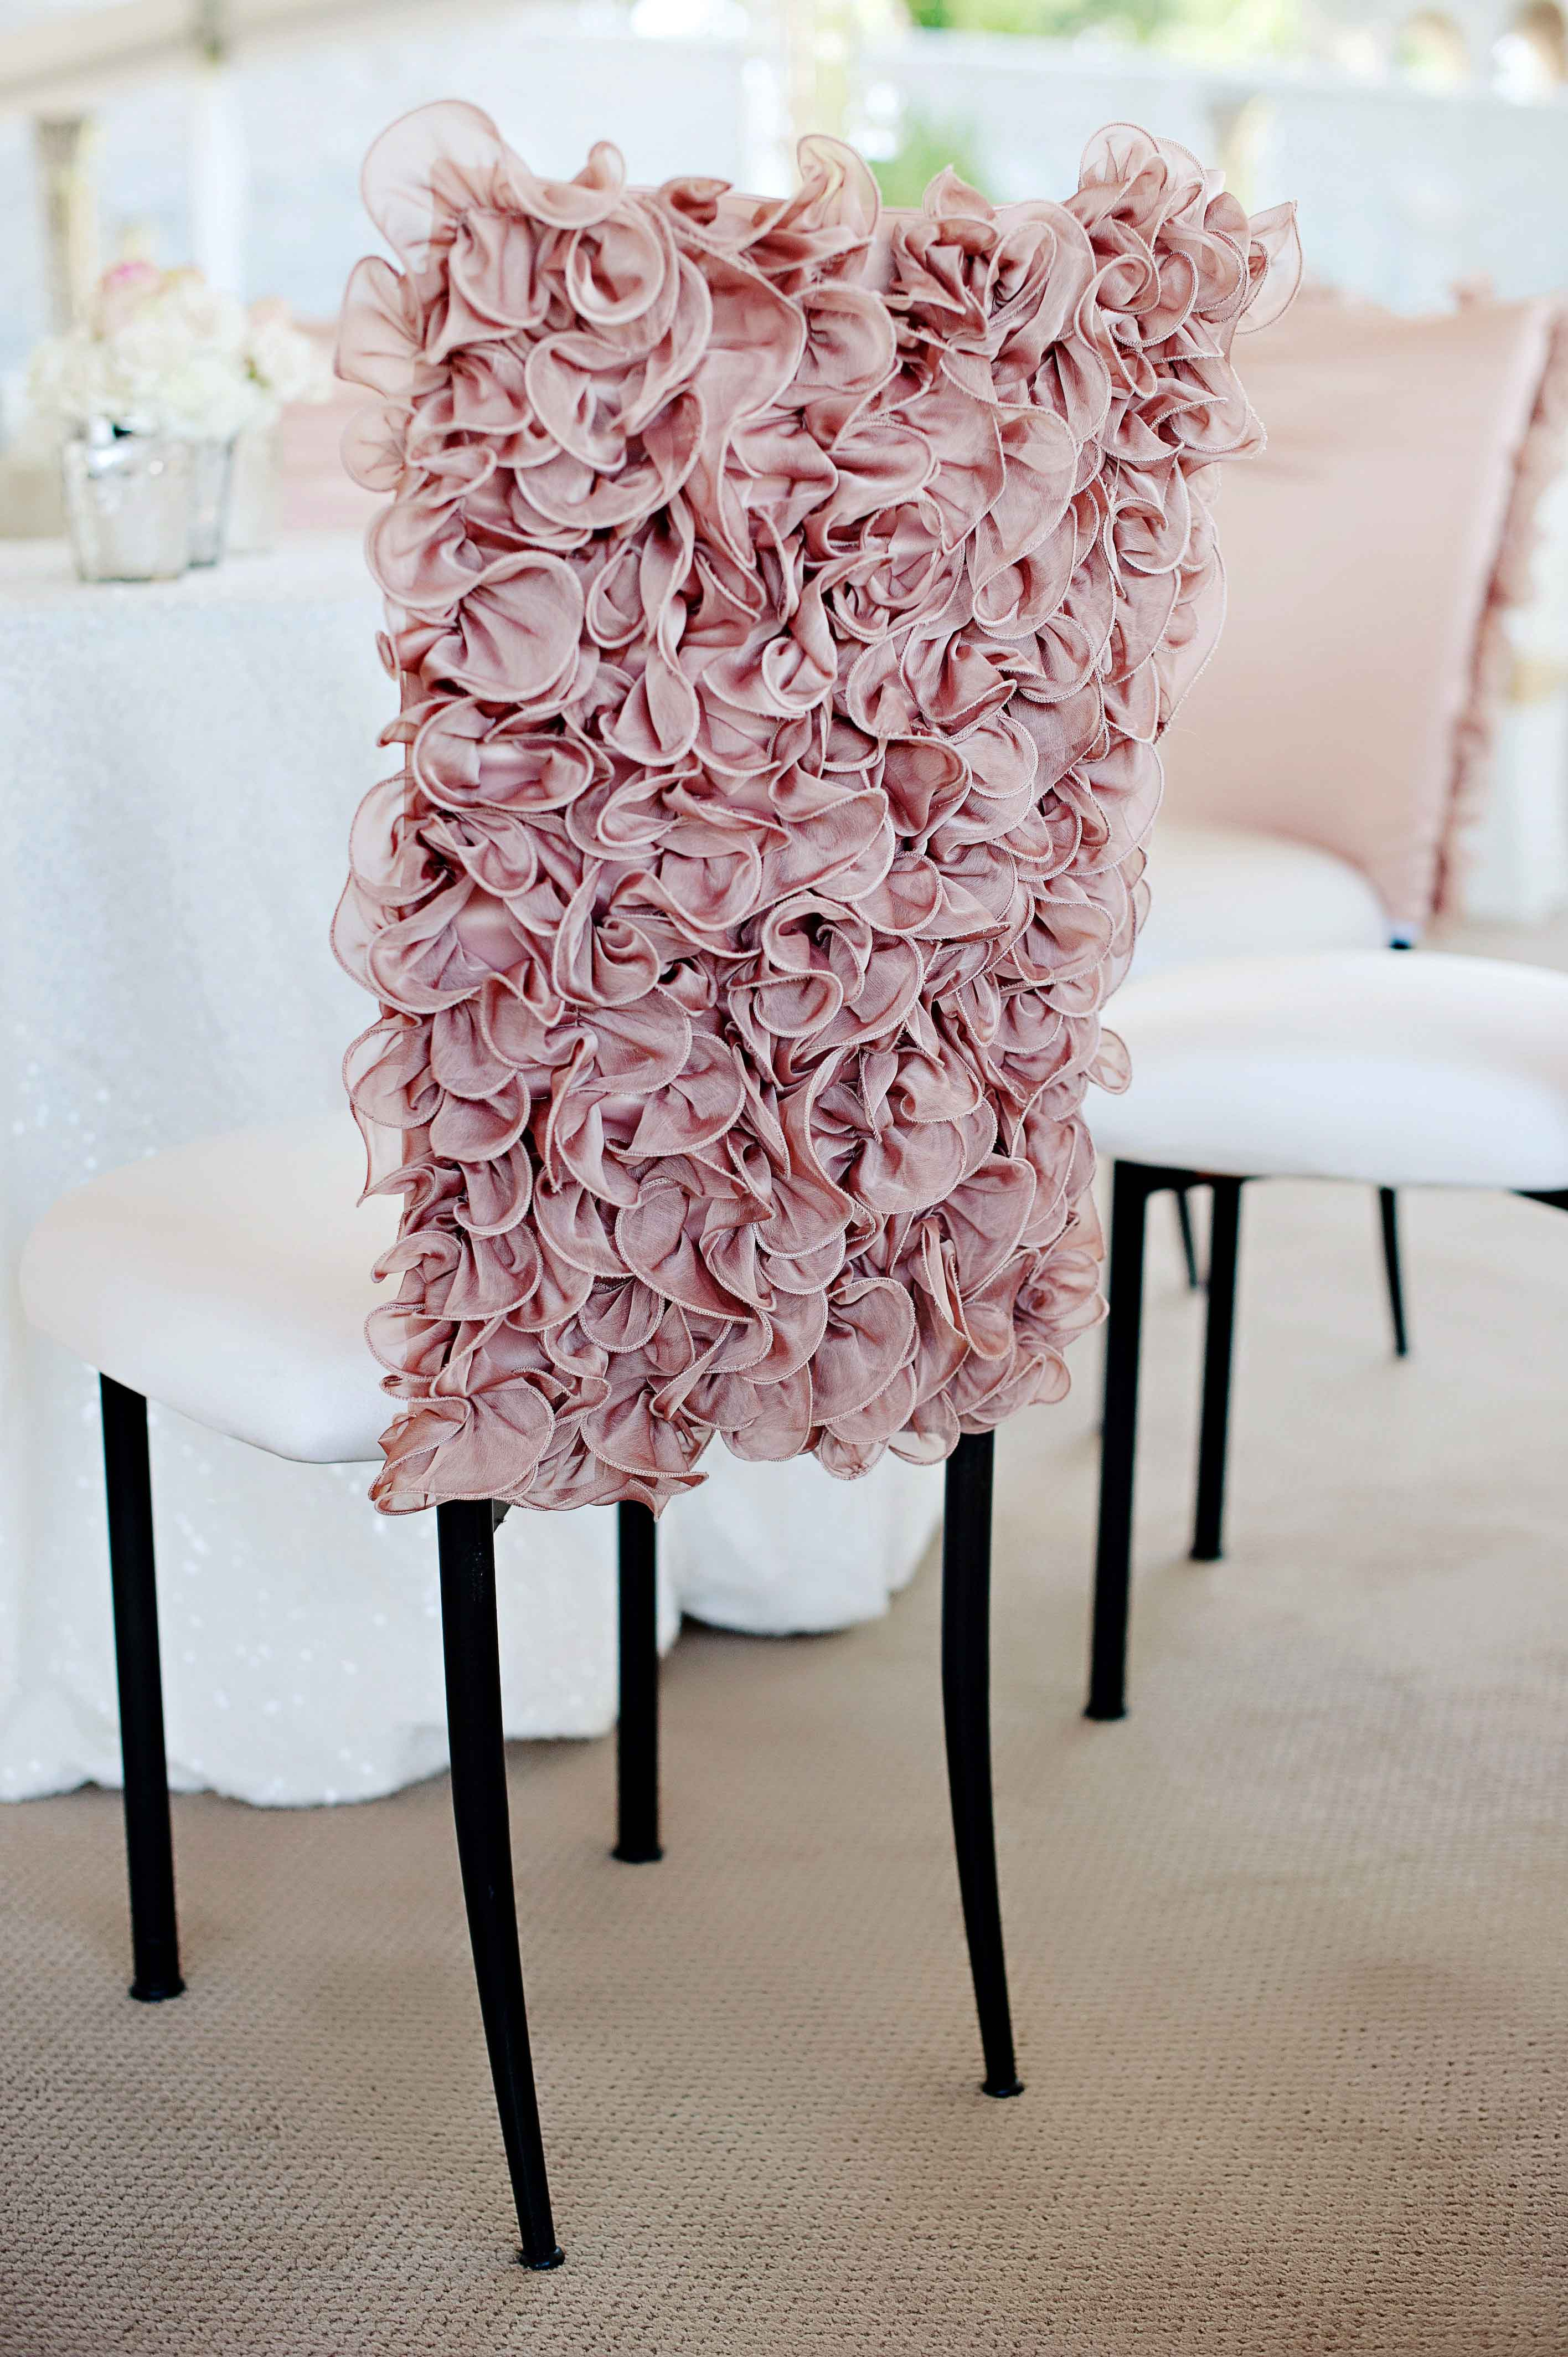 Wedding Ideas 8 Ways to Add Ruffles to Décor Inside Weddings